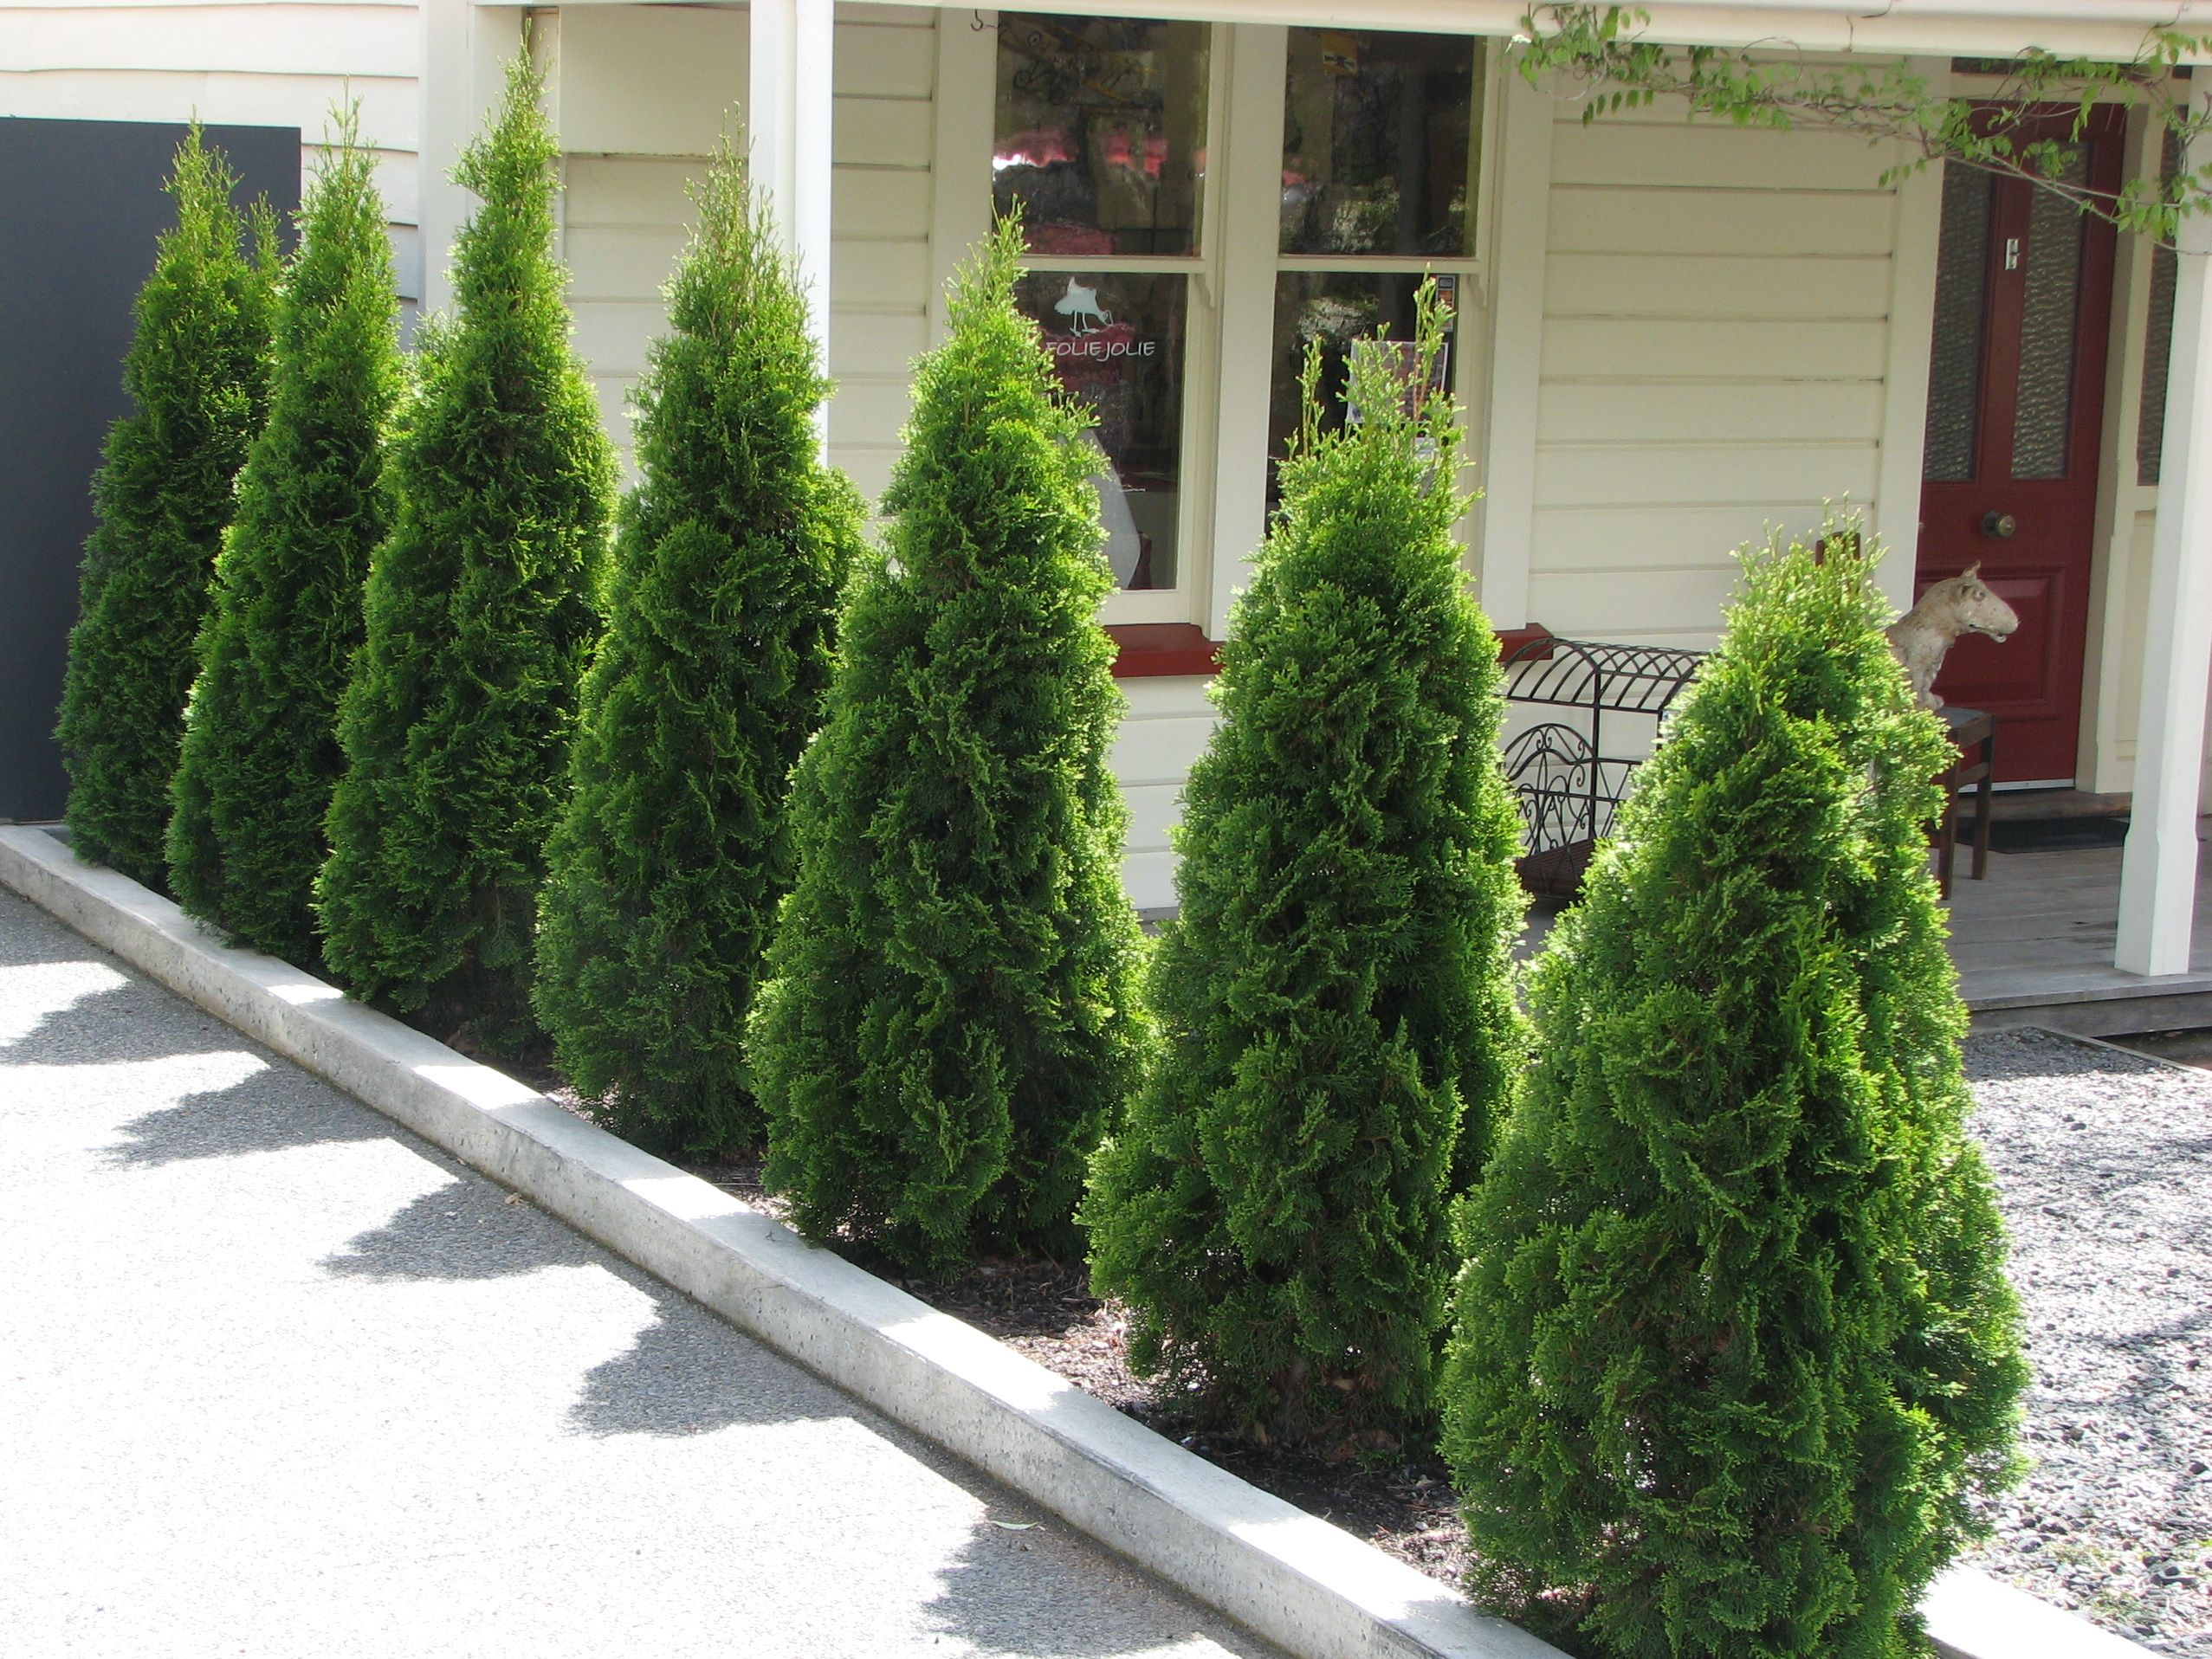 emerald green arborvitae privacy - 2201.8KB